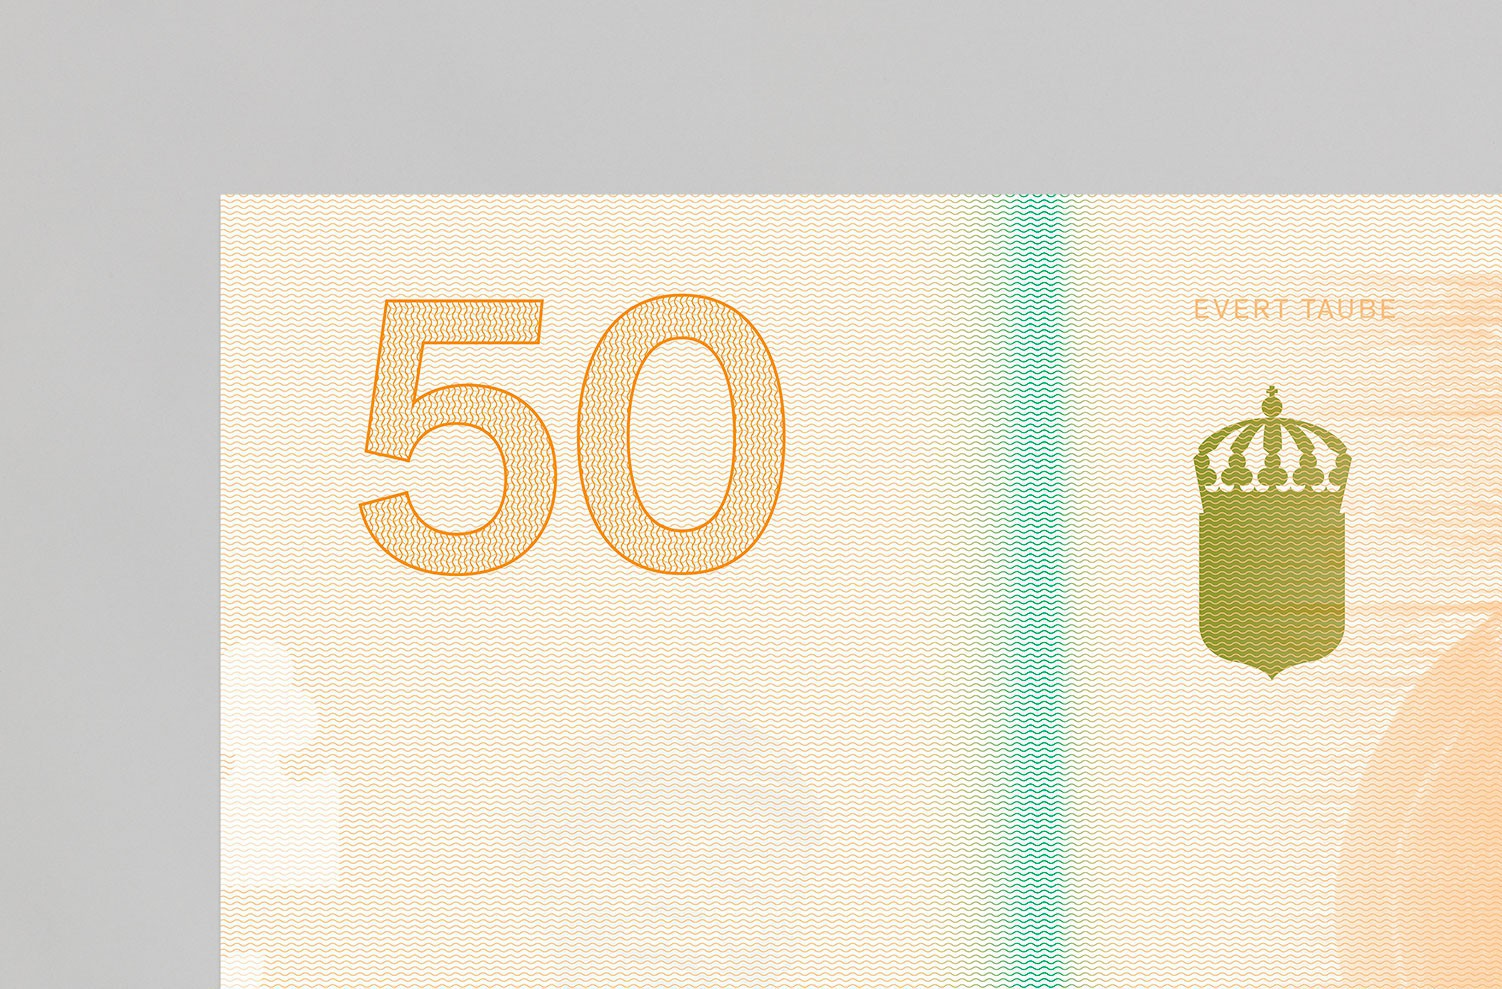 ritator_the_central_bank_of_sweden_banknotes_4